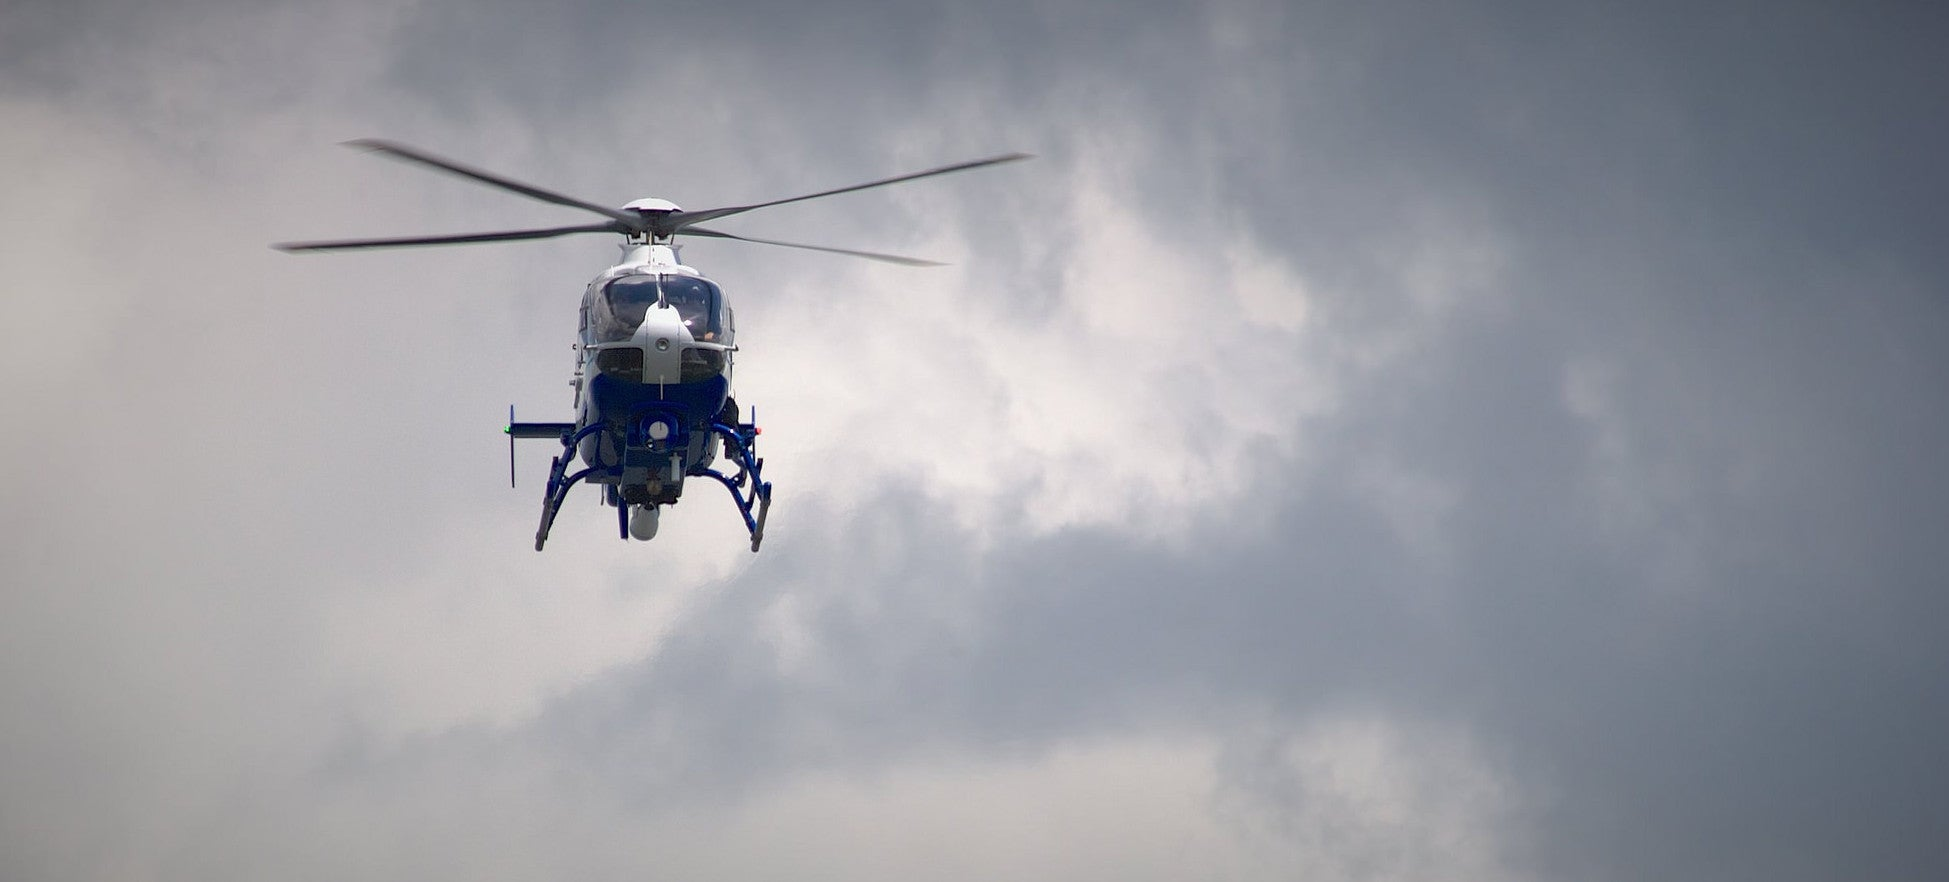 Airbus Working With Uber to Provide On-Demand Helicopter Flights